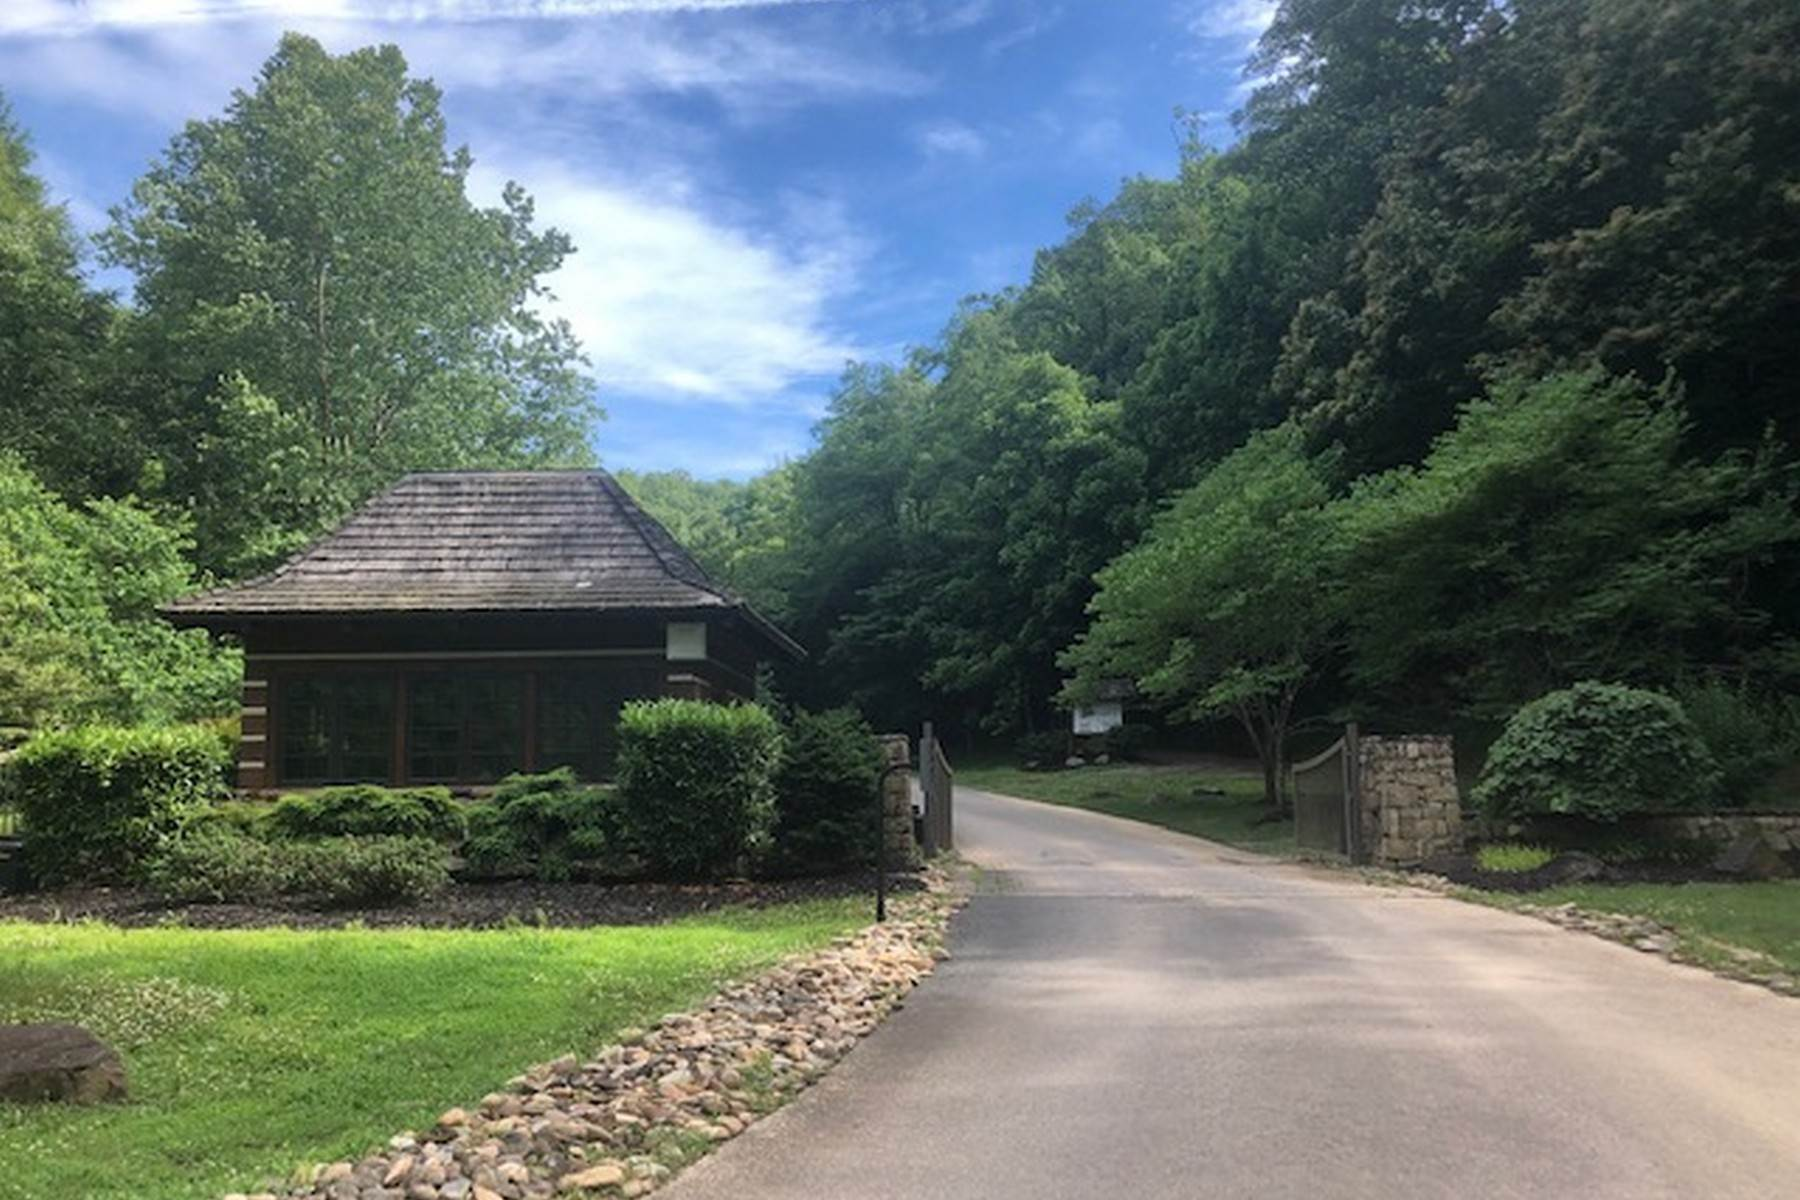 Land for Sale at Dynamic Views Of Smoky Mountains Lightning Bug Way, Lot D-7 Gatlinburg, Tennessee 37738 United States